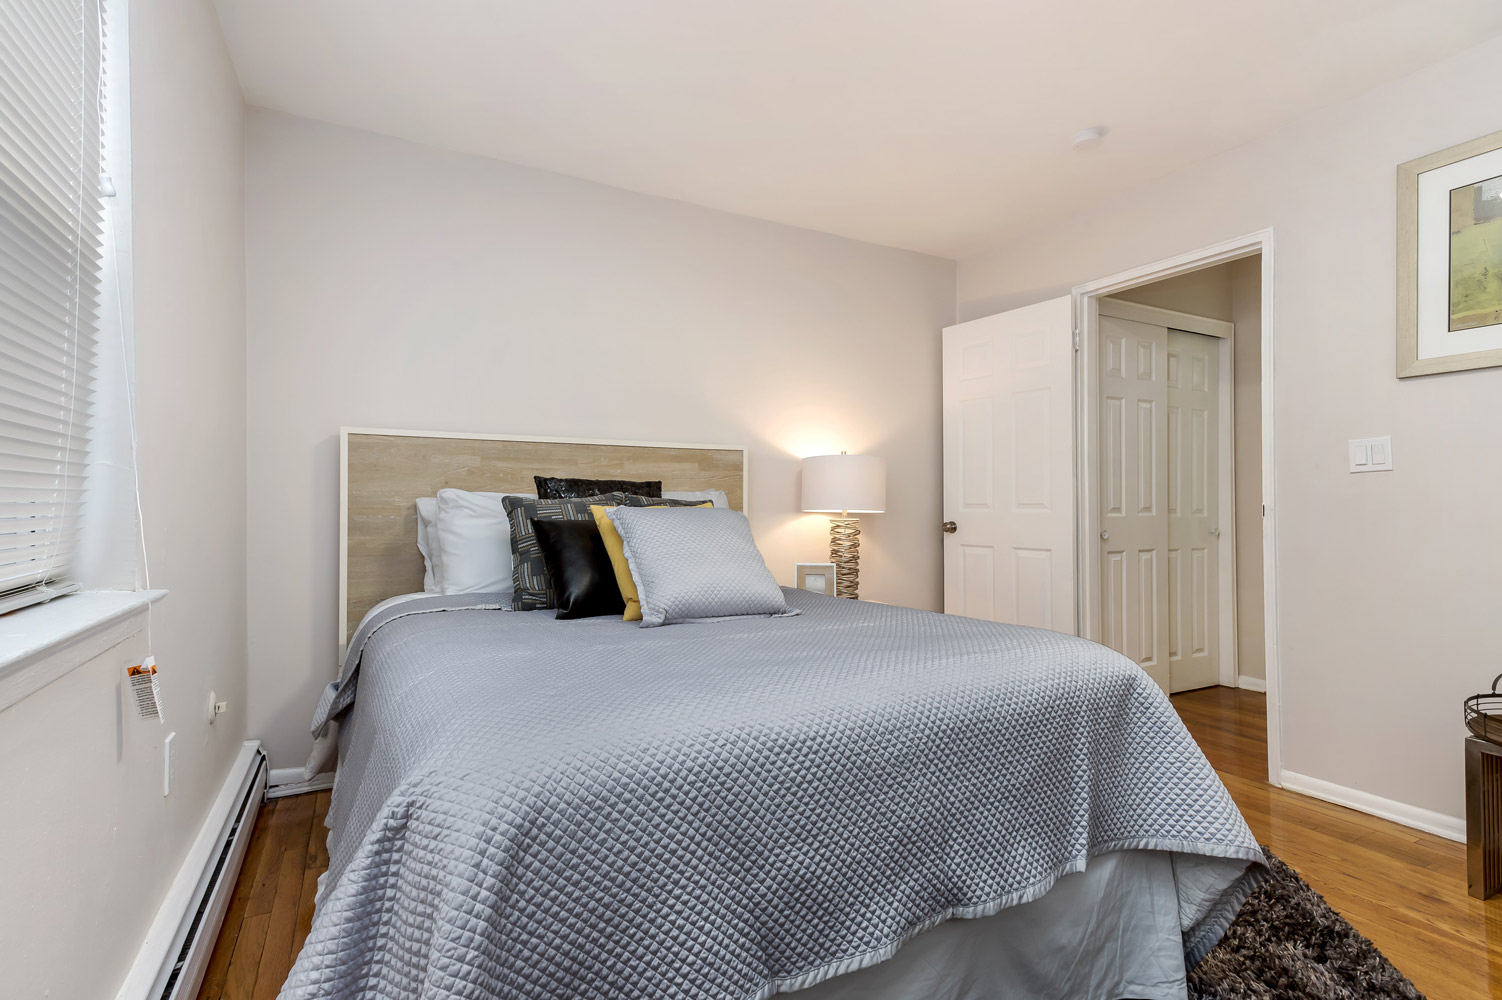 Cozy Bedrooms at Grandview Gardens Apartments in Edison, New Jersey